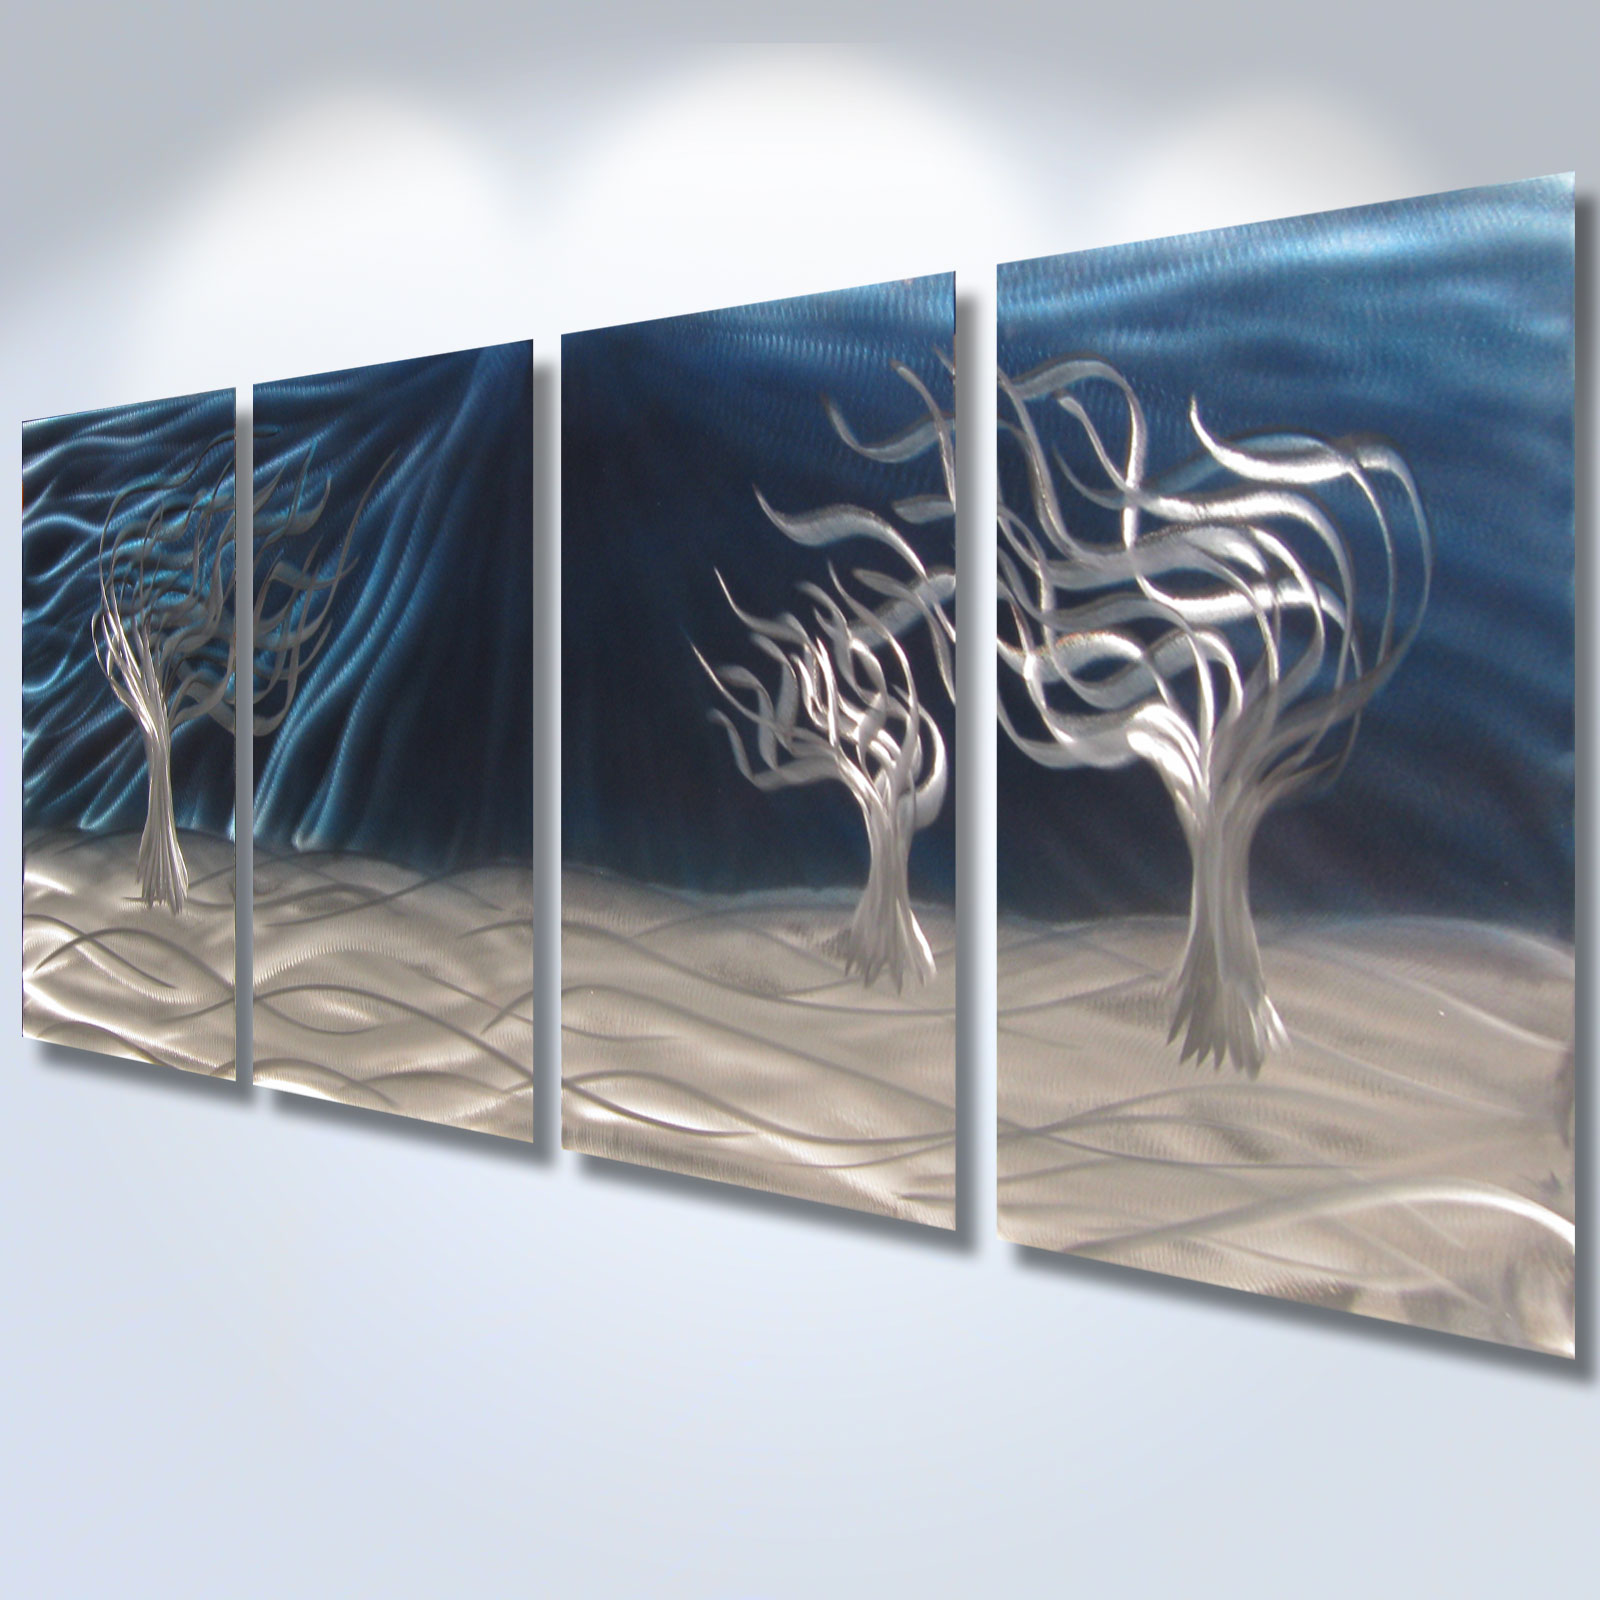 3 Trees Blue - Abstract Metal Wall Art Contemporary Modern Decor & 3 Trees Blue - Abstract Metal Wall Art Contemporary Modern Decor ...